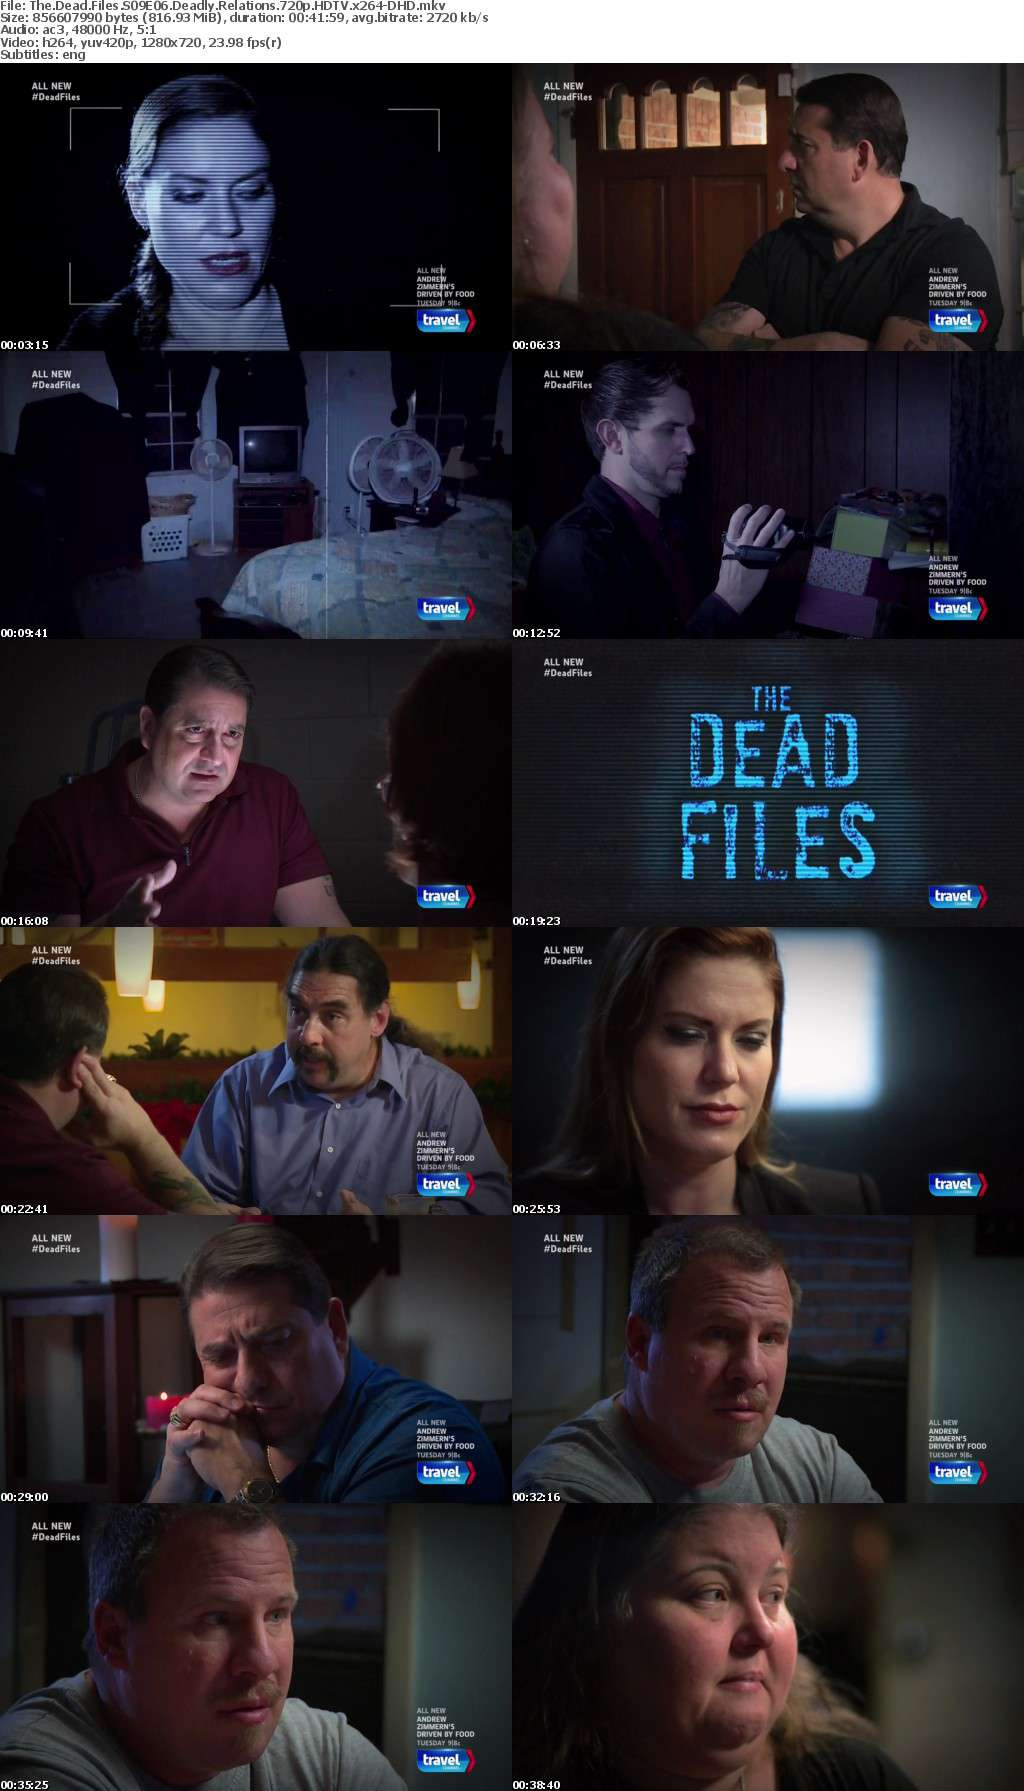 The Dead Files S09E06 Deadly Relations 720p HDTV x264-DHD